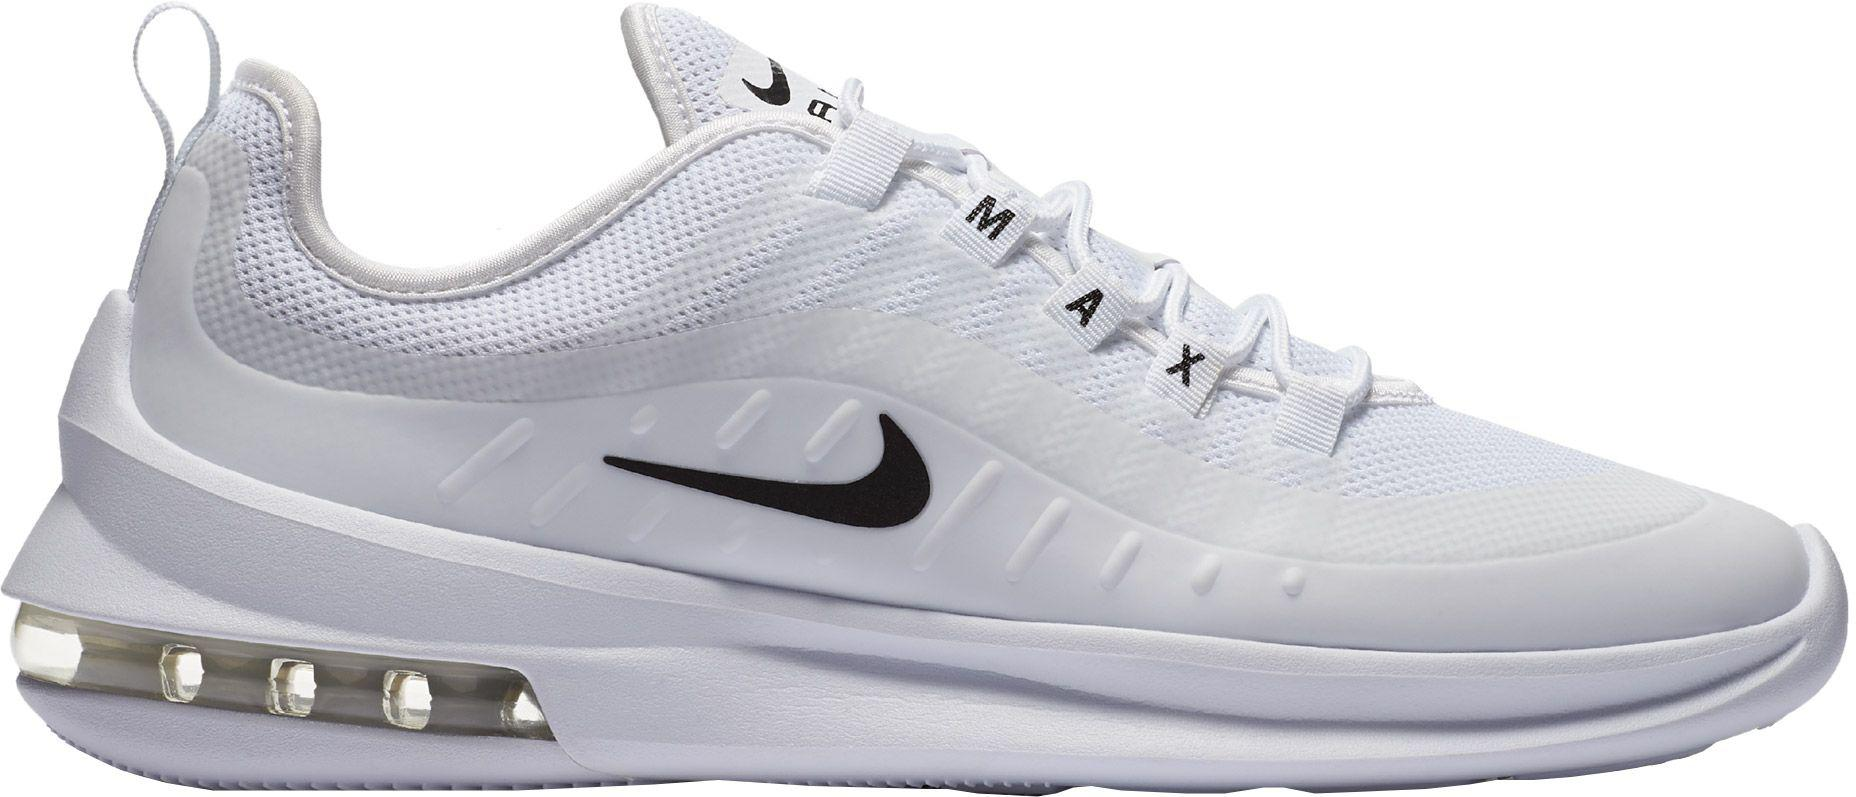 brand new 4a6b4 e0047 Nike - White Air Max Axis Shoes for Men - Lyst